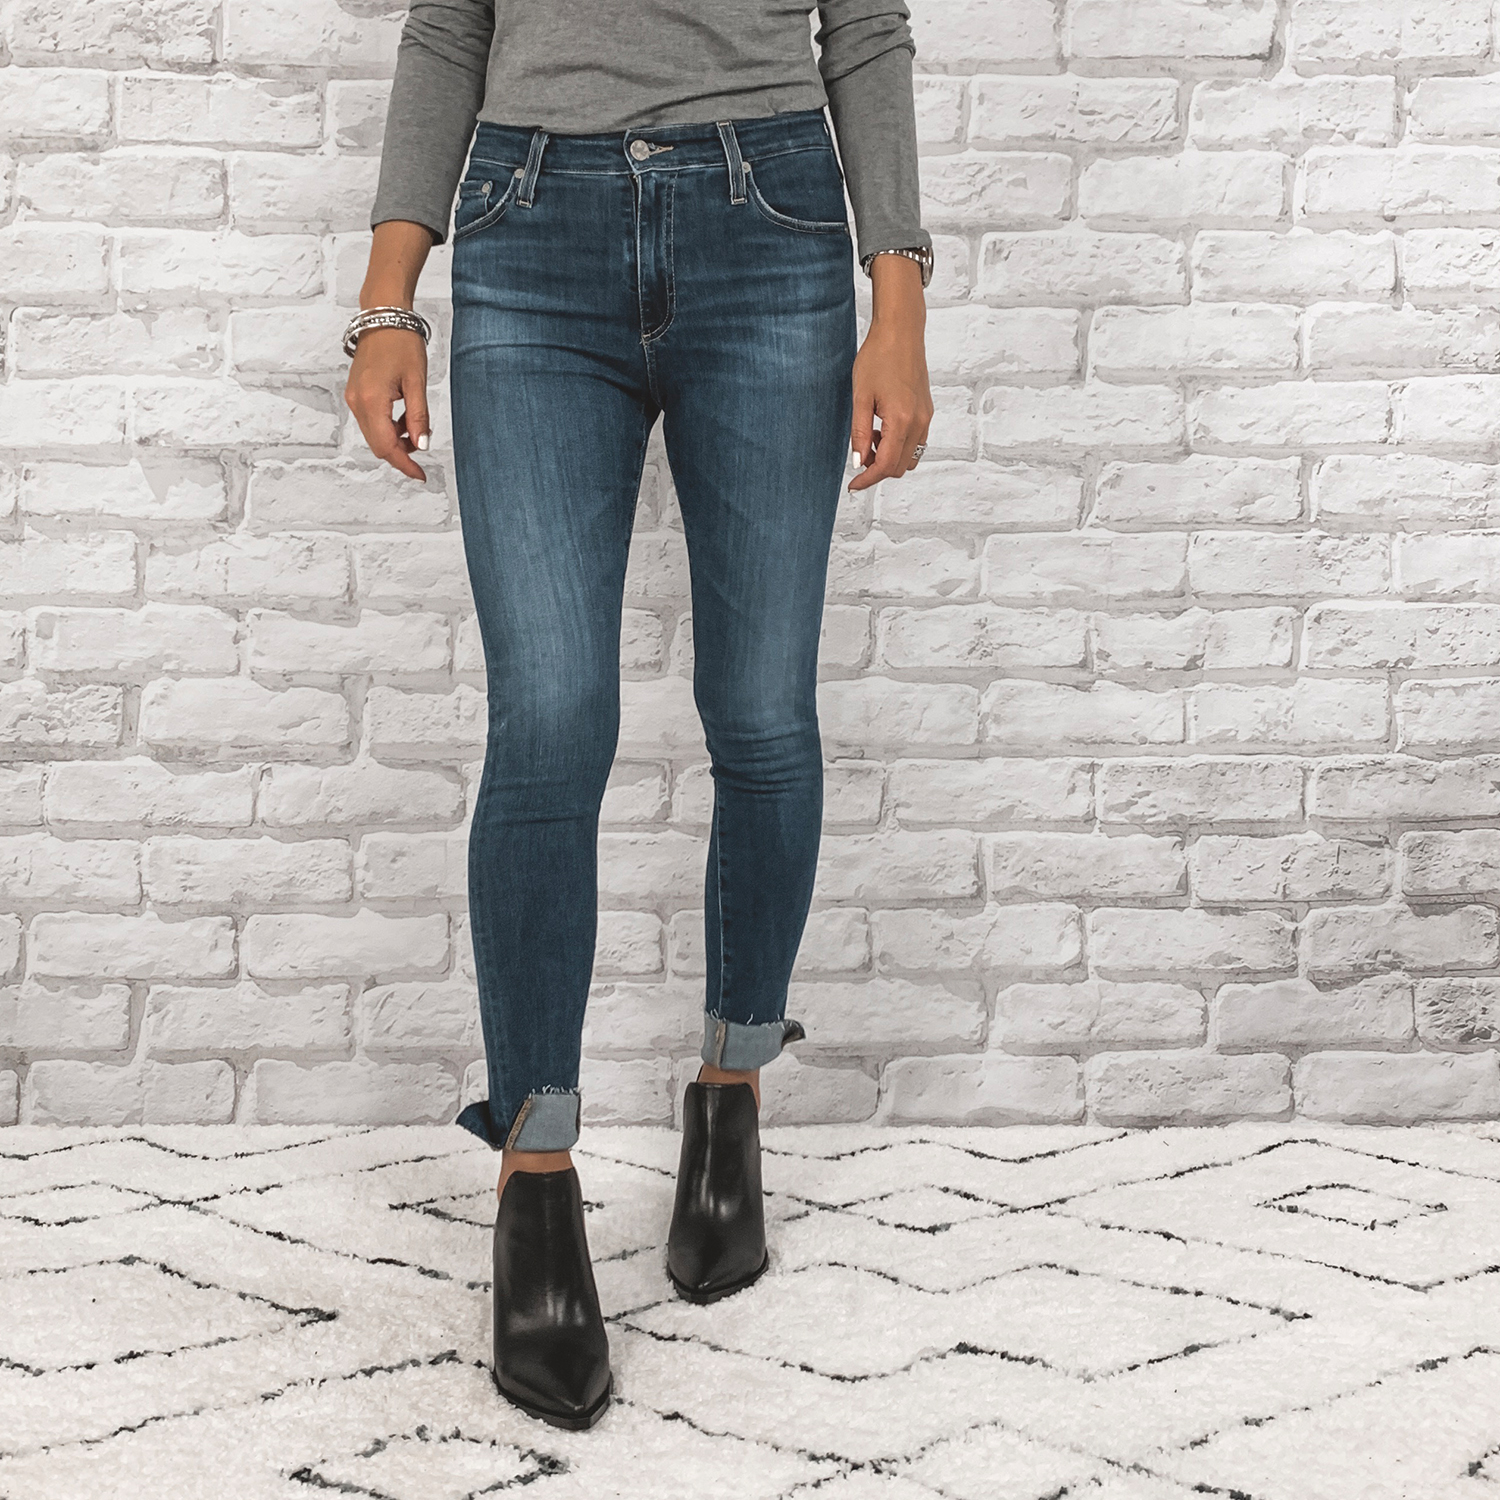 — OUTFIT DETAILS —    AG Farrah High Waisted Skinny Jeans      {Anniversary Price: $149.90 | After Sale: $225.00 | Wearing: 26}  |     Vince Camuto Boots